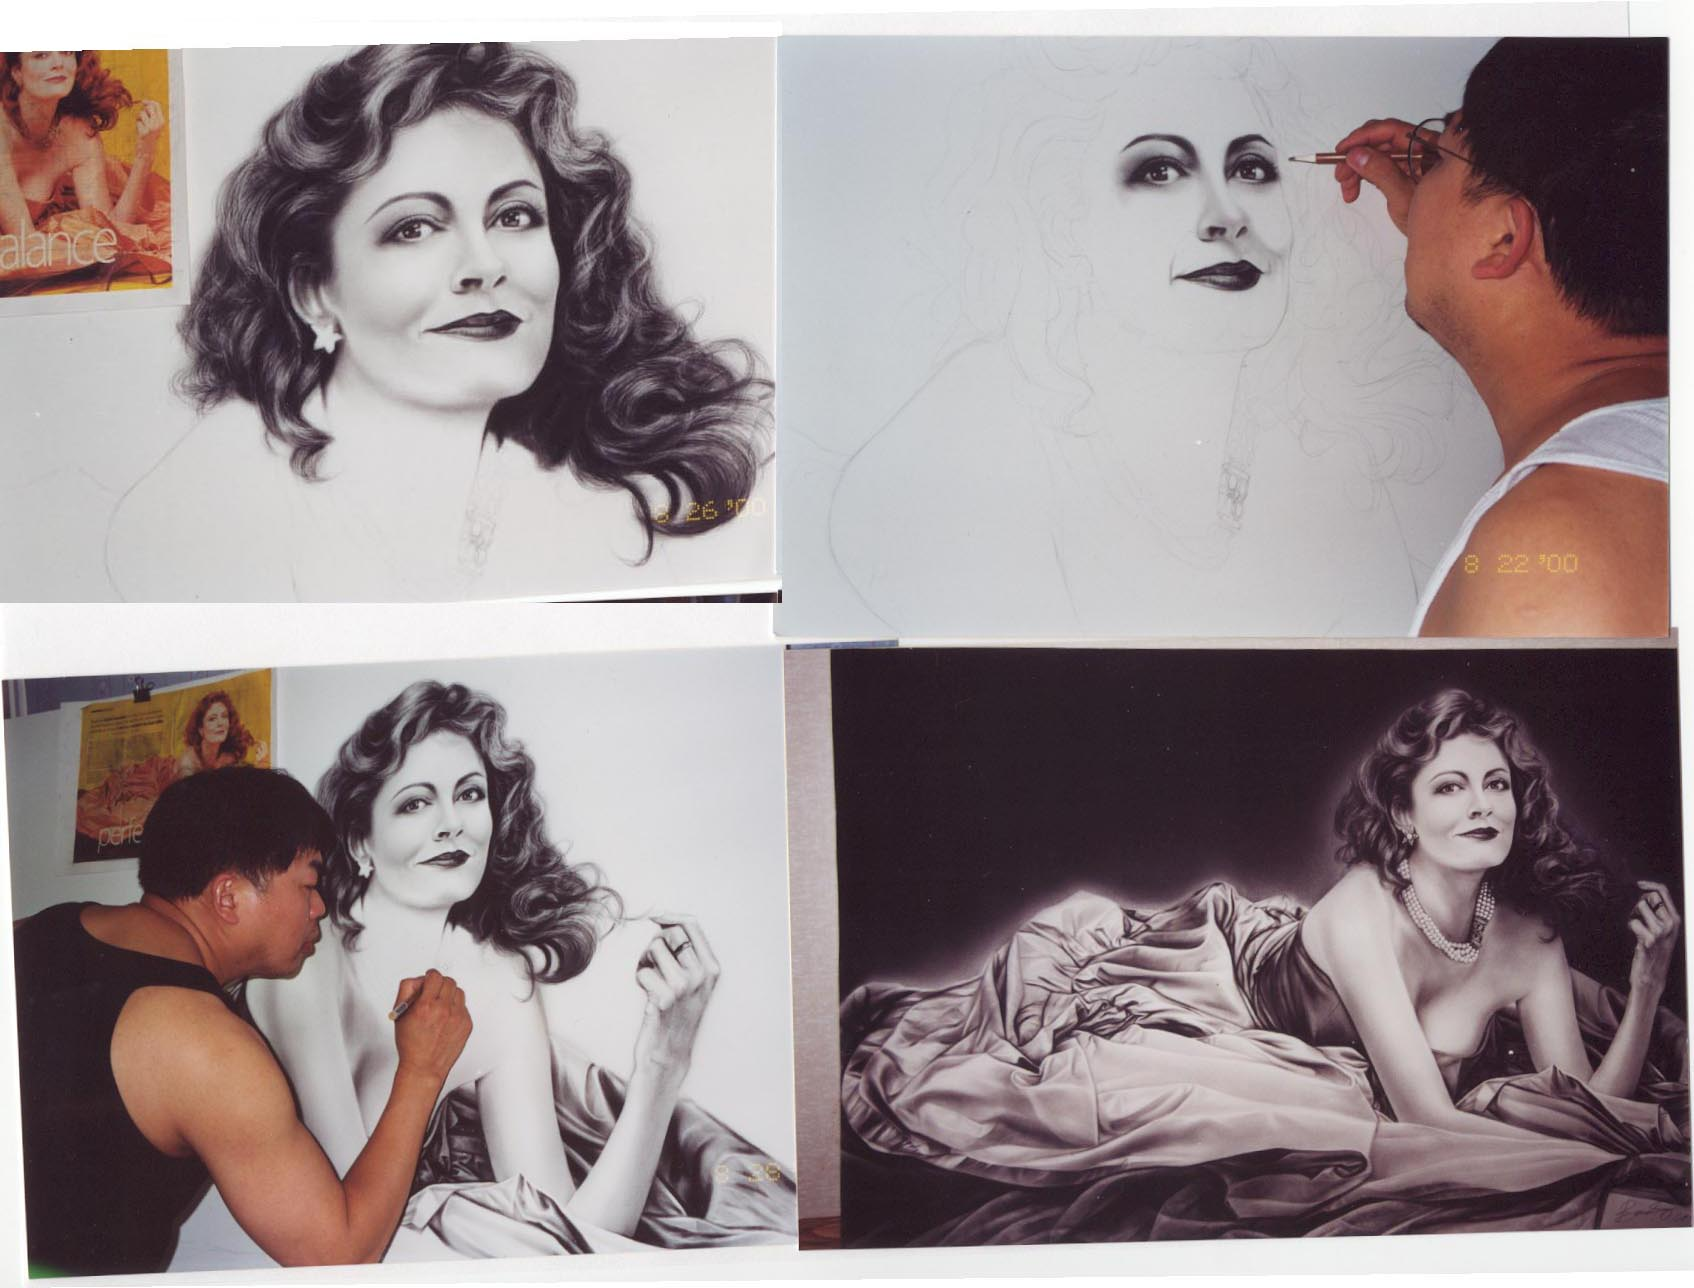 Here are 4 pictures of Susan Surandon being drawn